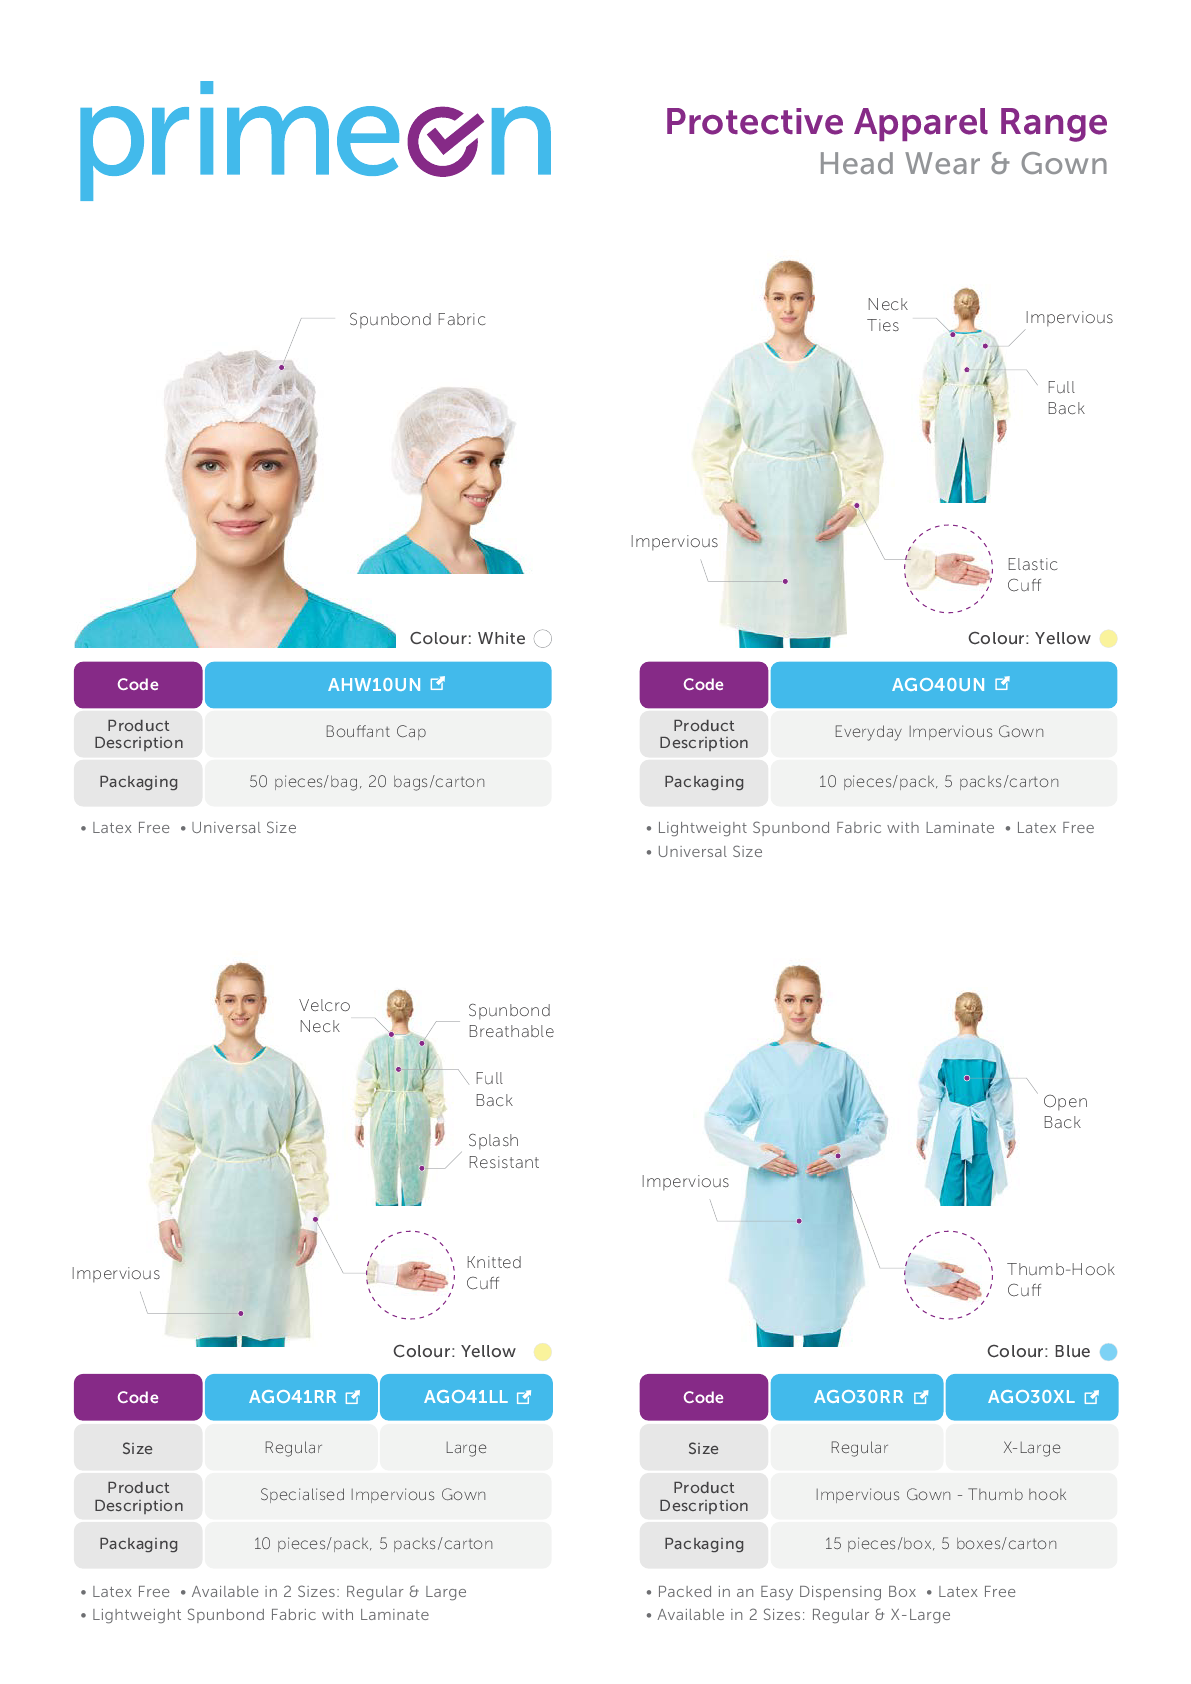 primeon-protective-equipment-guide-pacificlab-web6.png